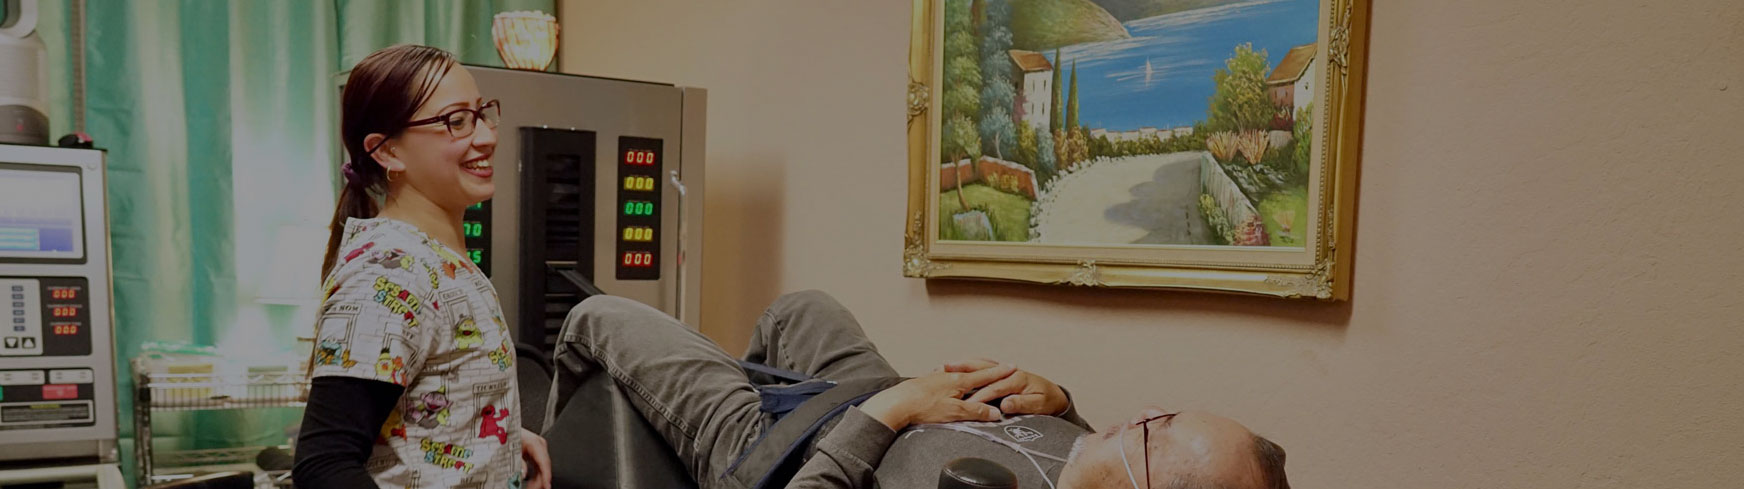 Spinal Decompression Protocol Stockton CA